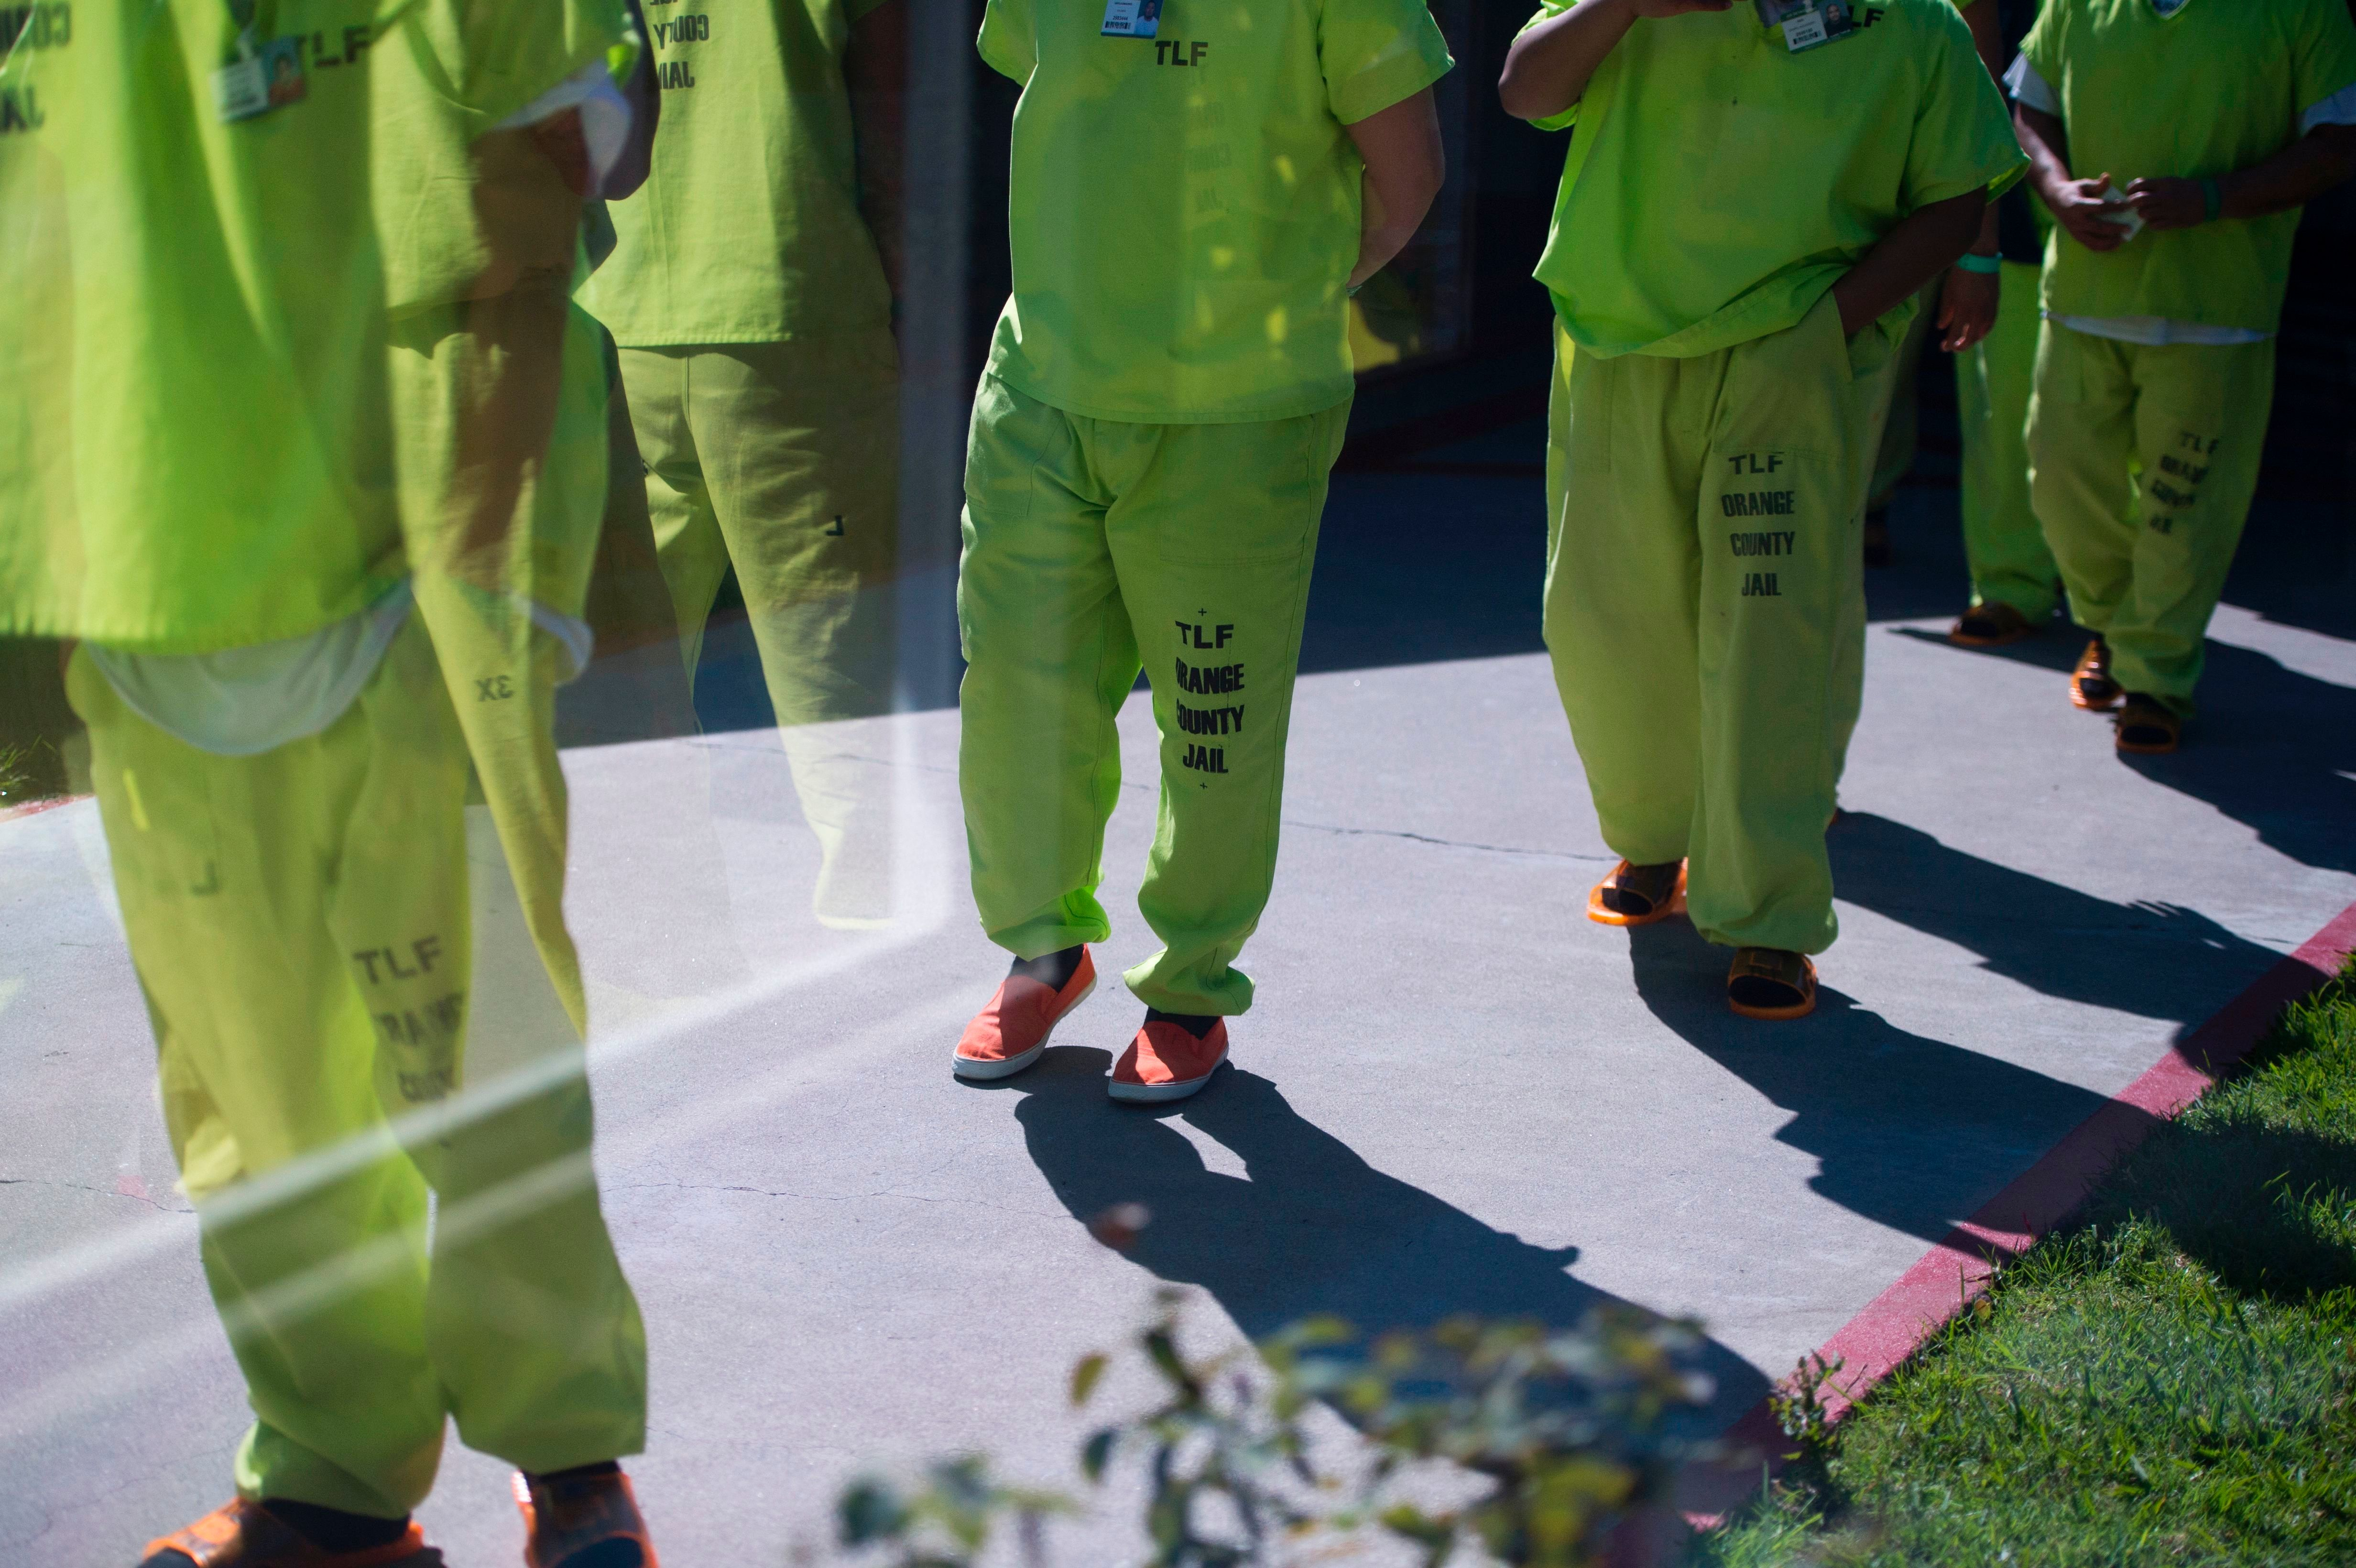 Men wearing neon-colored jail clothes signifying immigration detainees walk to pick up their lunches at the Theo Lacy Facility, a county jail which houses convicted criminals as well as immigration detainees, March 14, 2017 in Orange, California, about 32 miles (52km) southeast of Los Angeles. US President Donald Trumps first budget provides more than USD 4.5 billion in new spending to fight illegal immigration by adding immigration and border enforcement agents, prosecutors and judges, as well as building a wall on the border with Mexico. / AFP PHOTO / Robyn Beck        (Photo credit should read ROBYN BECK/AFP/Getty Images)